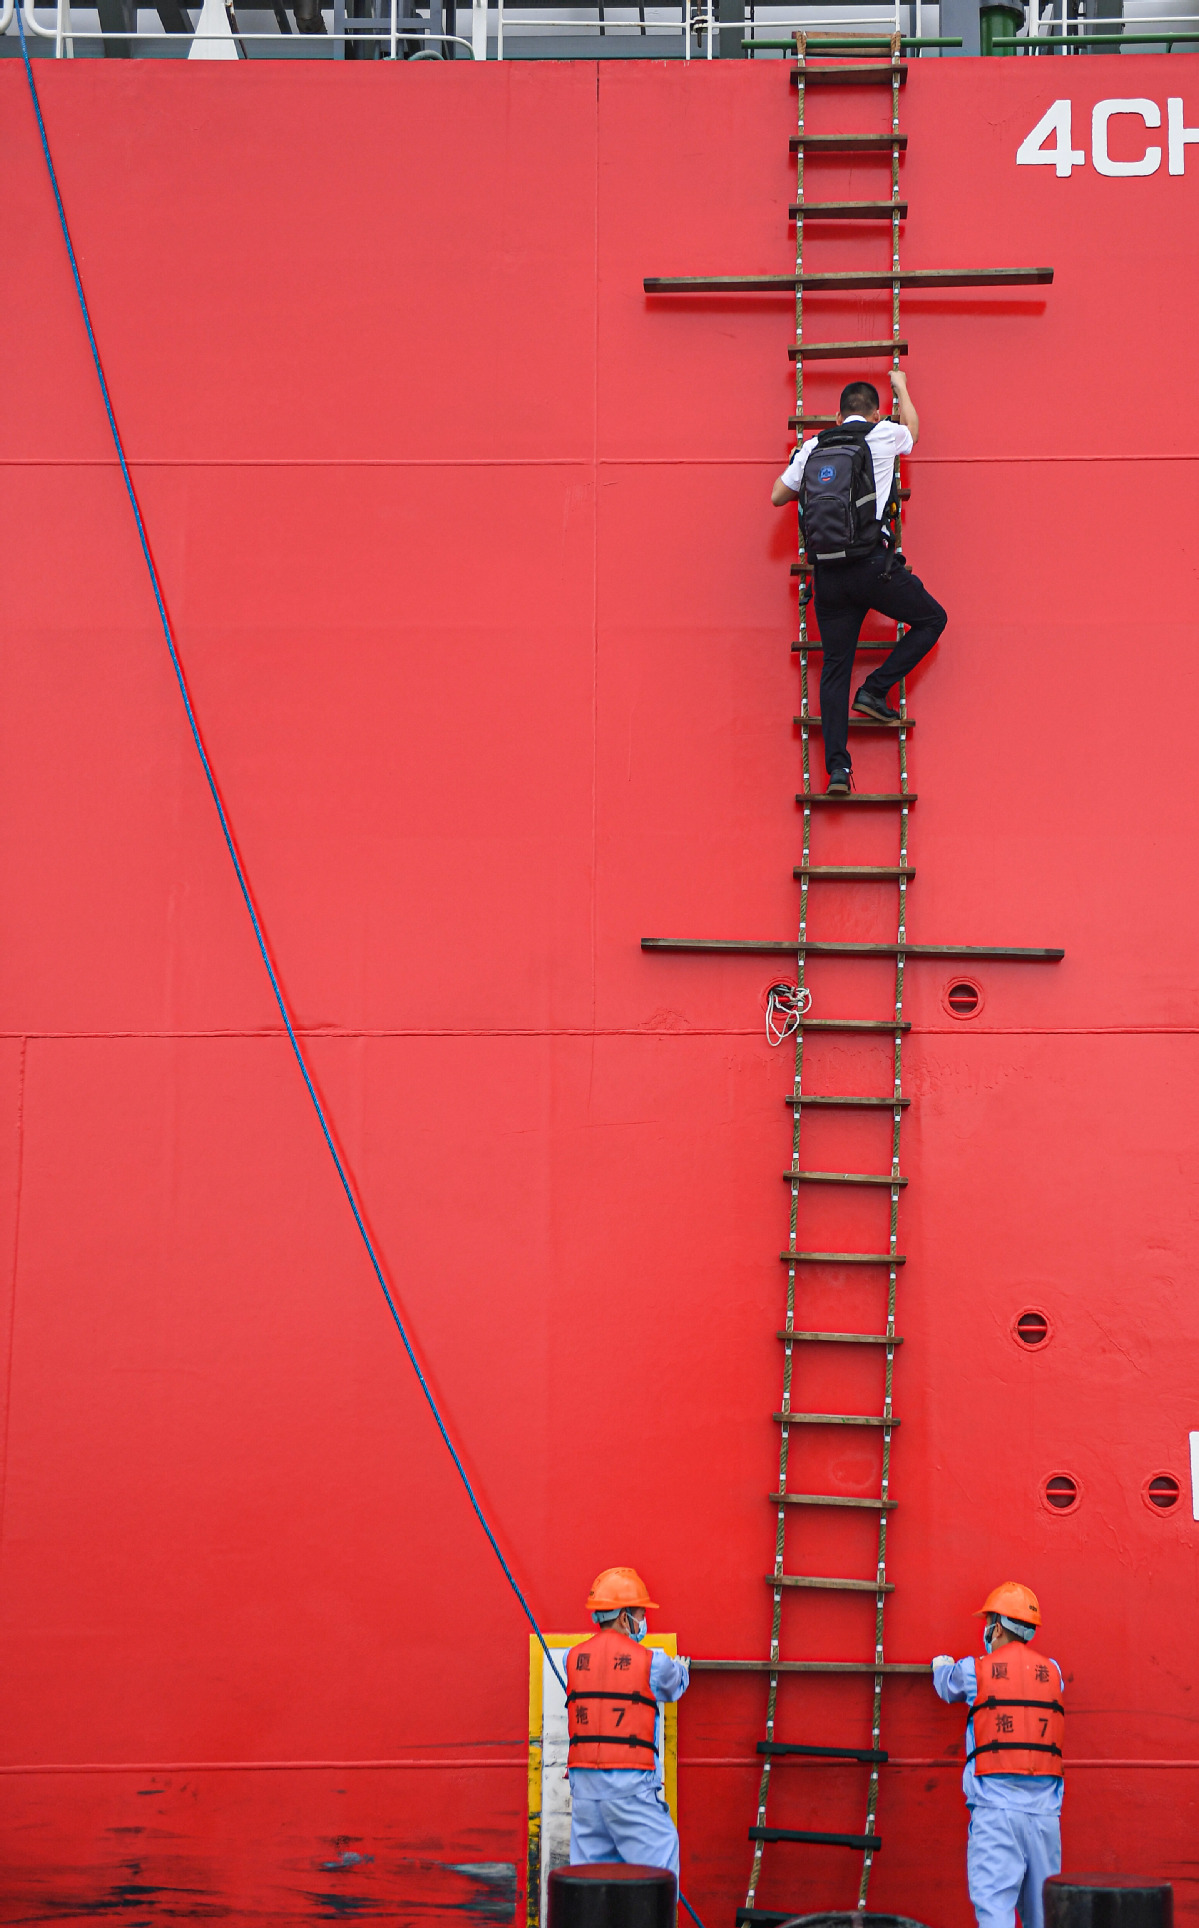 After piloting a large ship into Yangpu Port, Lin Hongpin climbs a tugboat on a soft ladder for other piloting tasks. [Photo by Pu Xiaoxu/Xinhua]